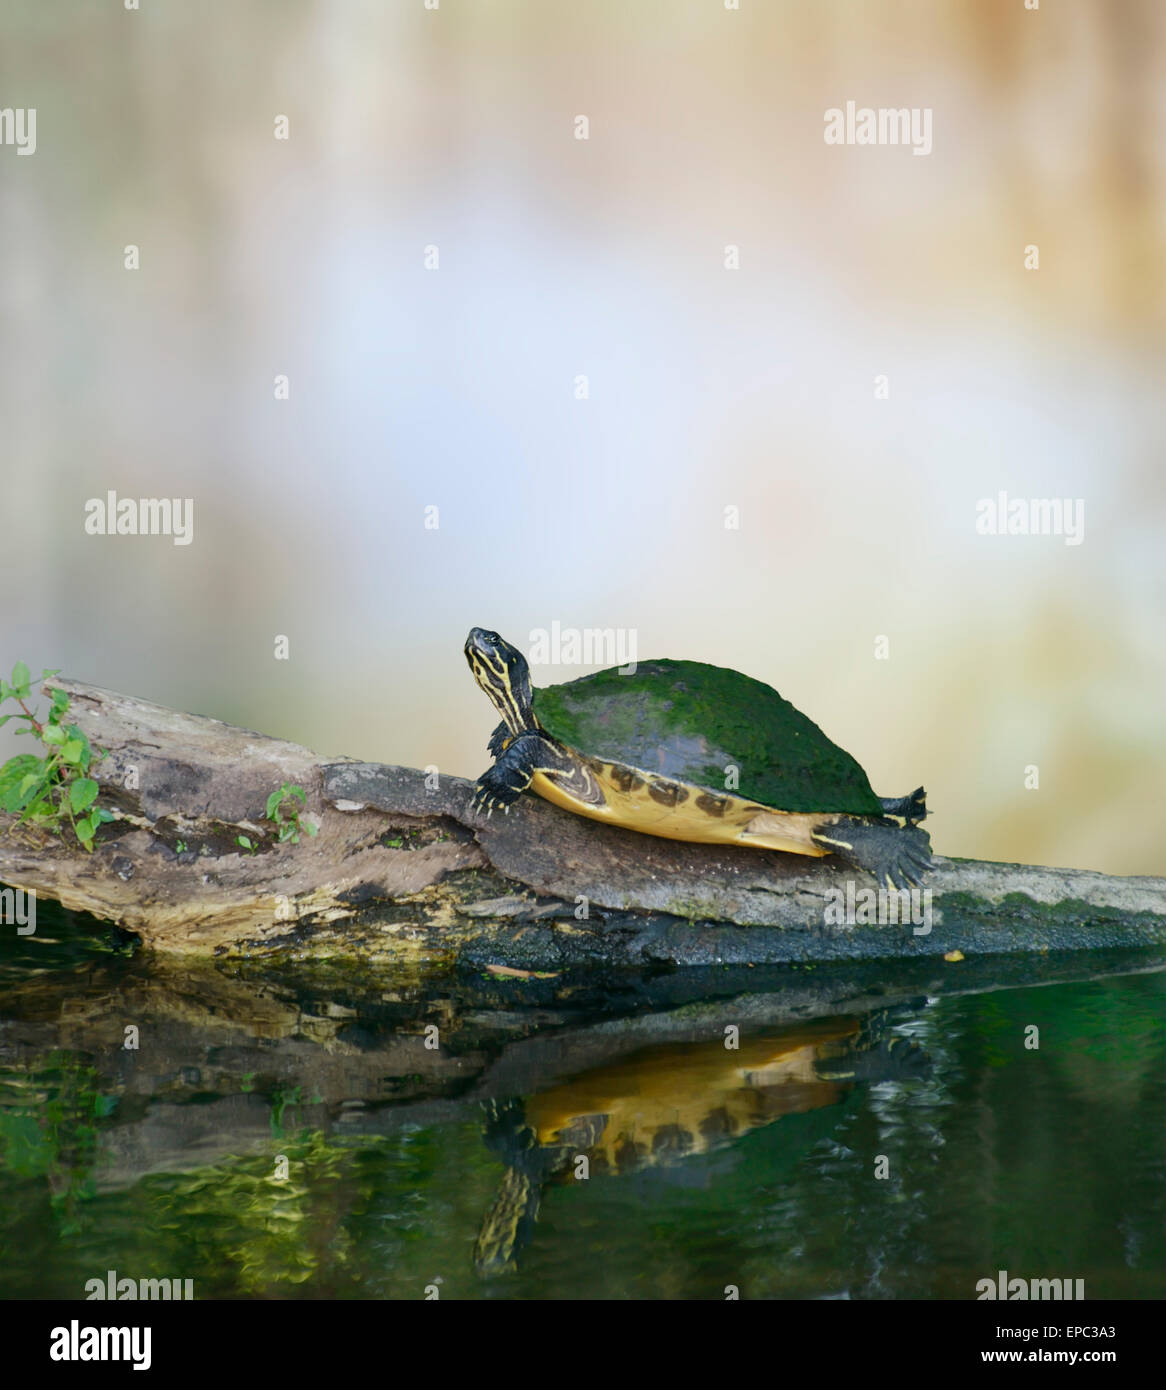 Florida Cooter Turtle On A Log - Stock Image